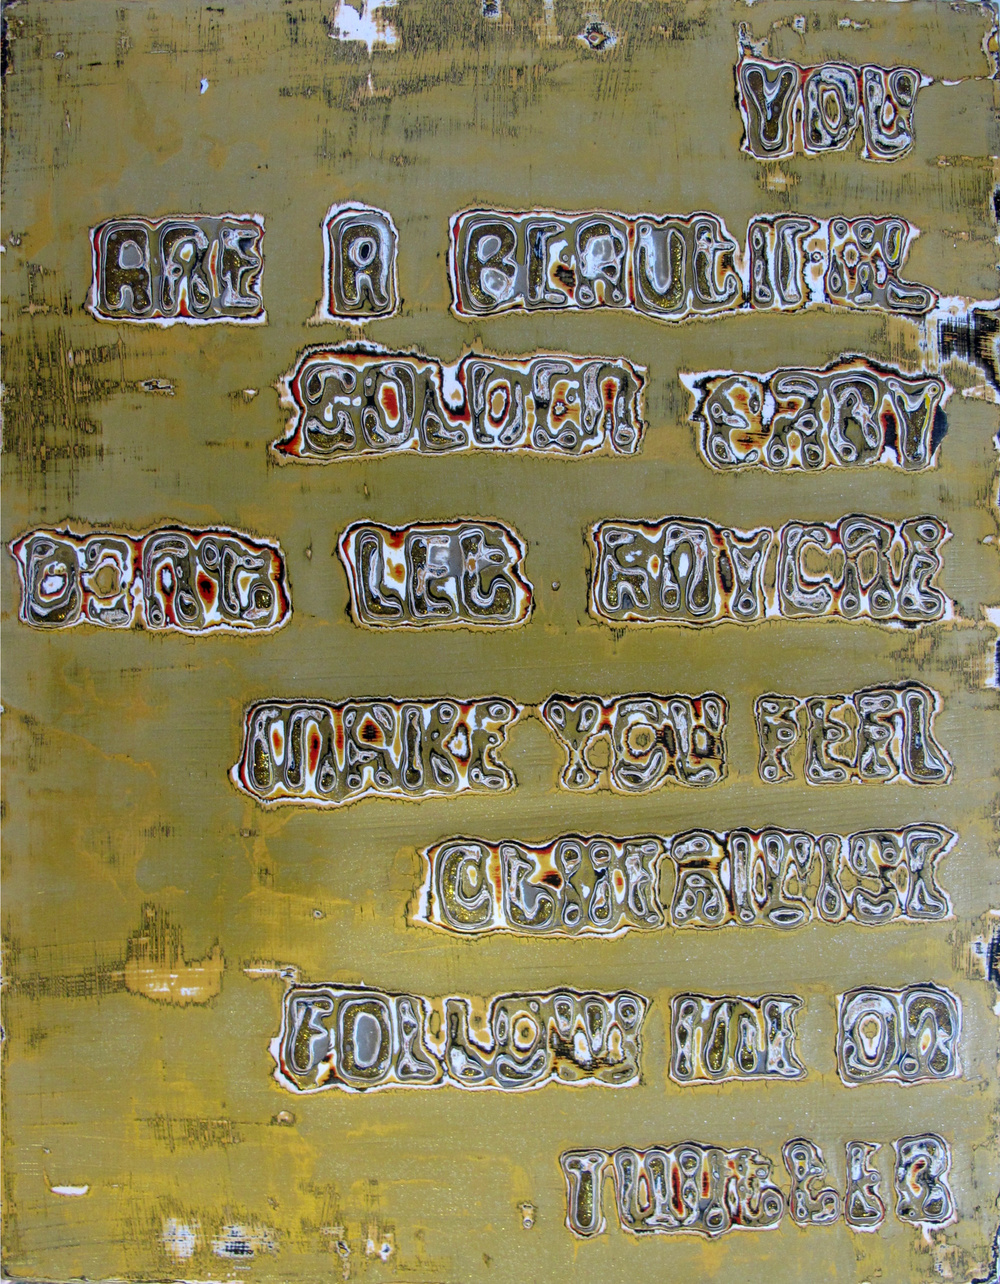 "25, Atlanta (Golden)  Reduced Acrylic on Panel,  Glitter  12"" x 16""  SOLD"